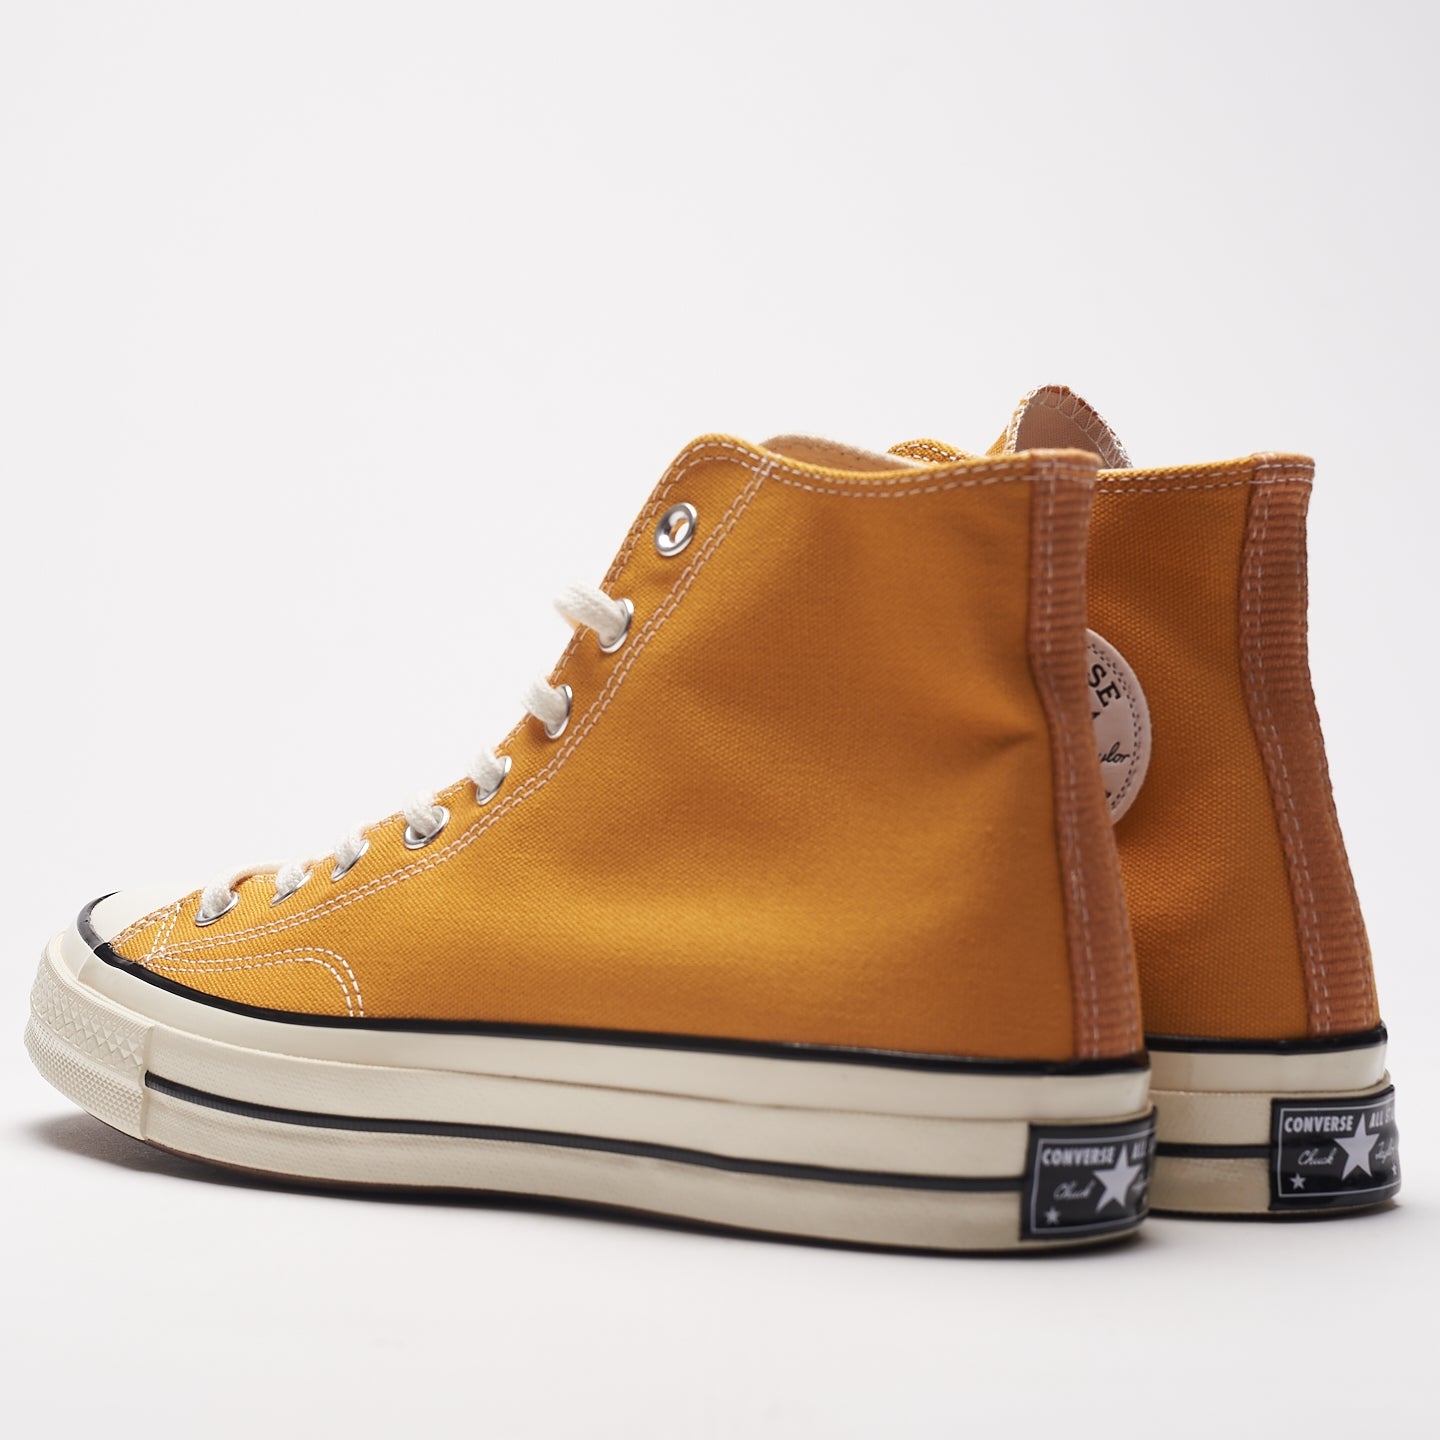 CHUCK 70 HIGH TOP SUNFLOWER